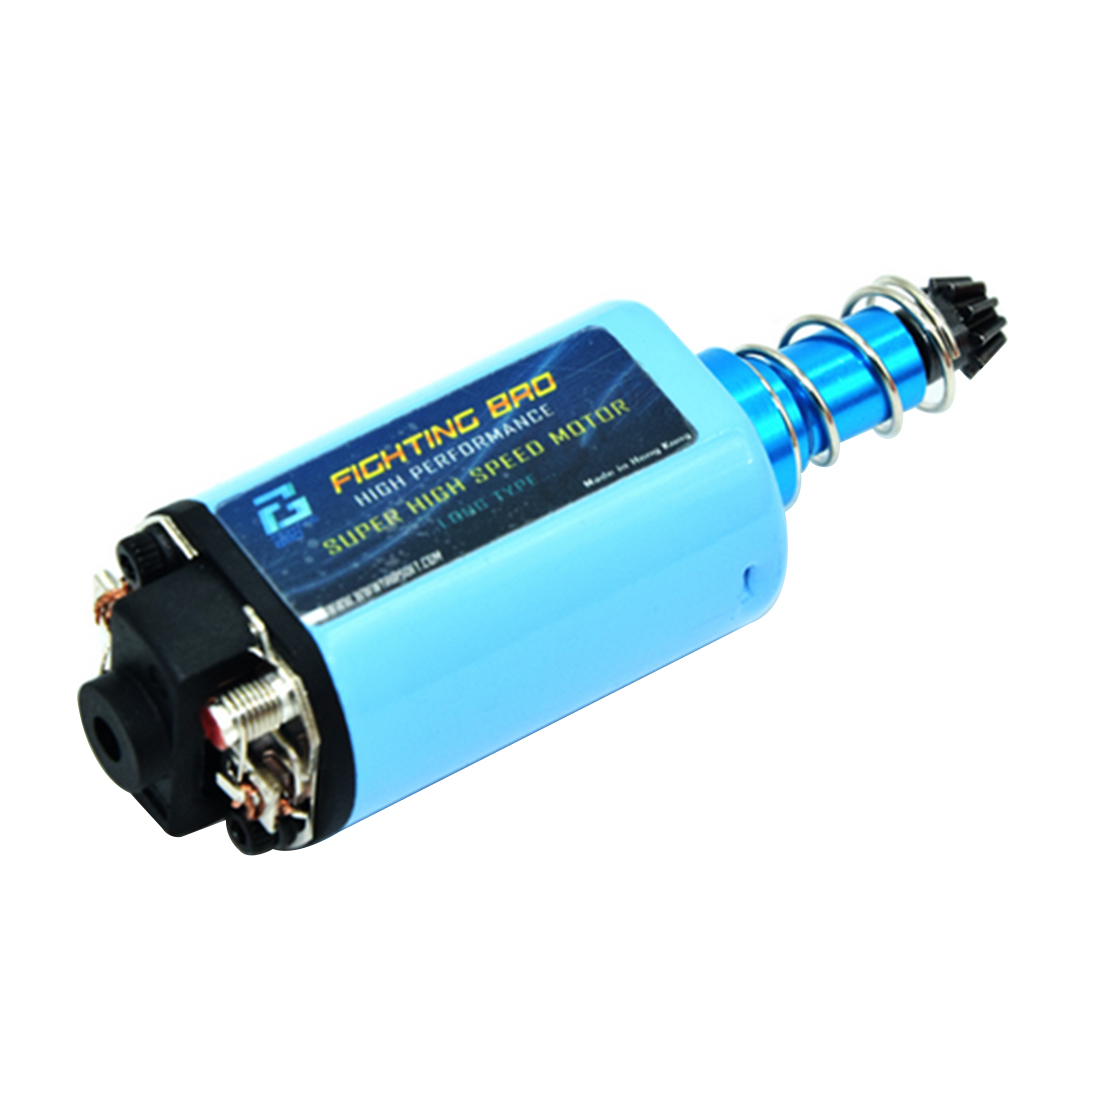 Surwish FB HighSpeed Long Axis Motor for No.2 Gear Box Modified - Blue тостер scarlett sc tm11005 page 5